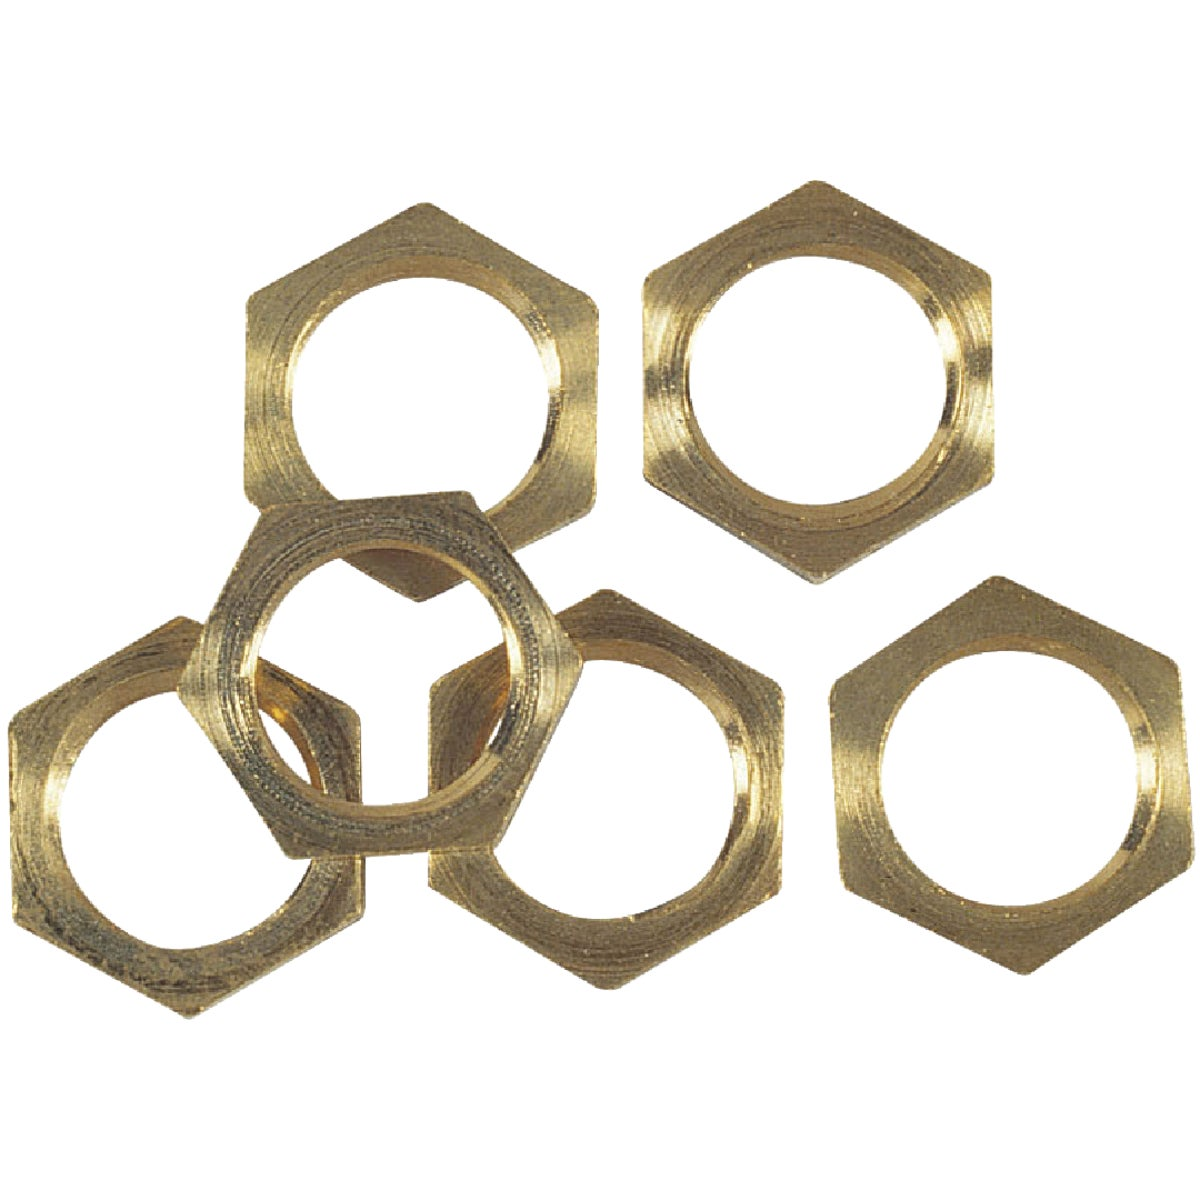 BRASS LAMP LOCKNUTS - 70621 by Westinghouse Lightng